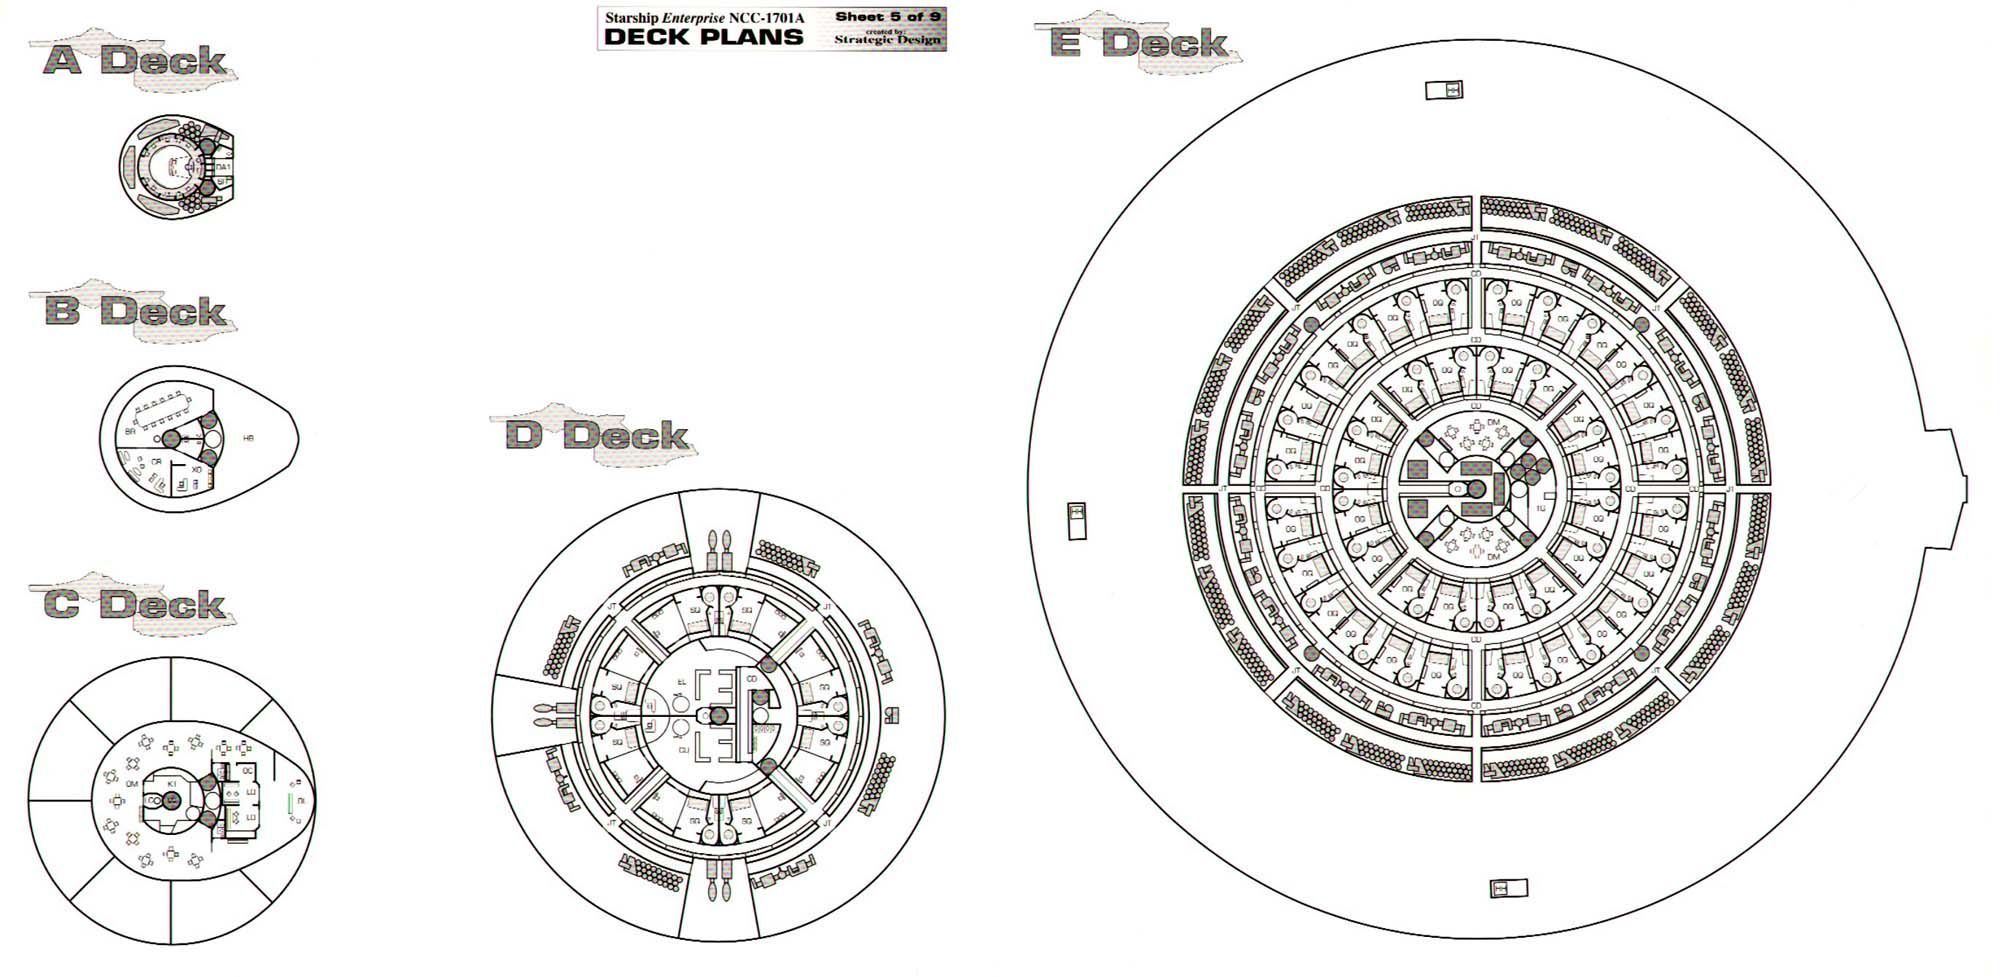 Star Trek Blueprints Uss Enterprise Ncc A Deck Plans